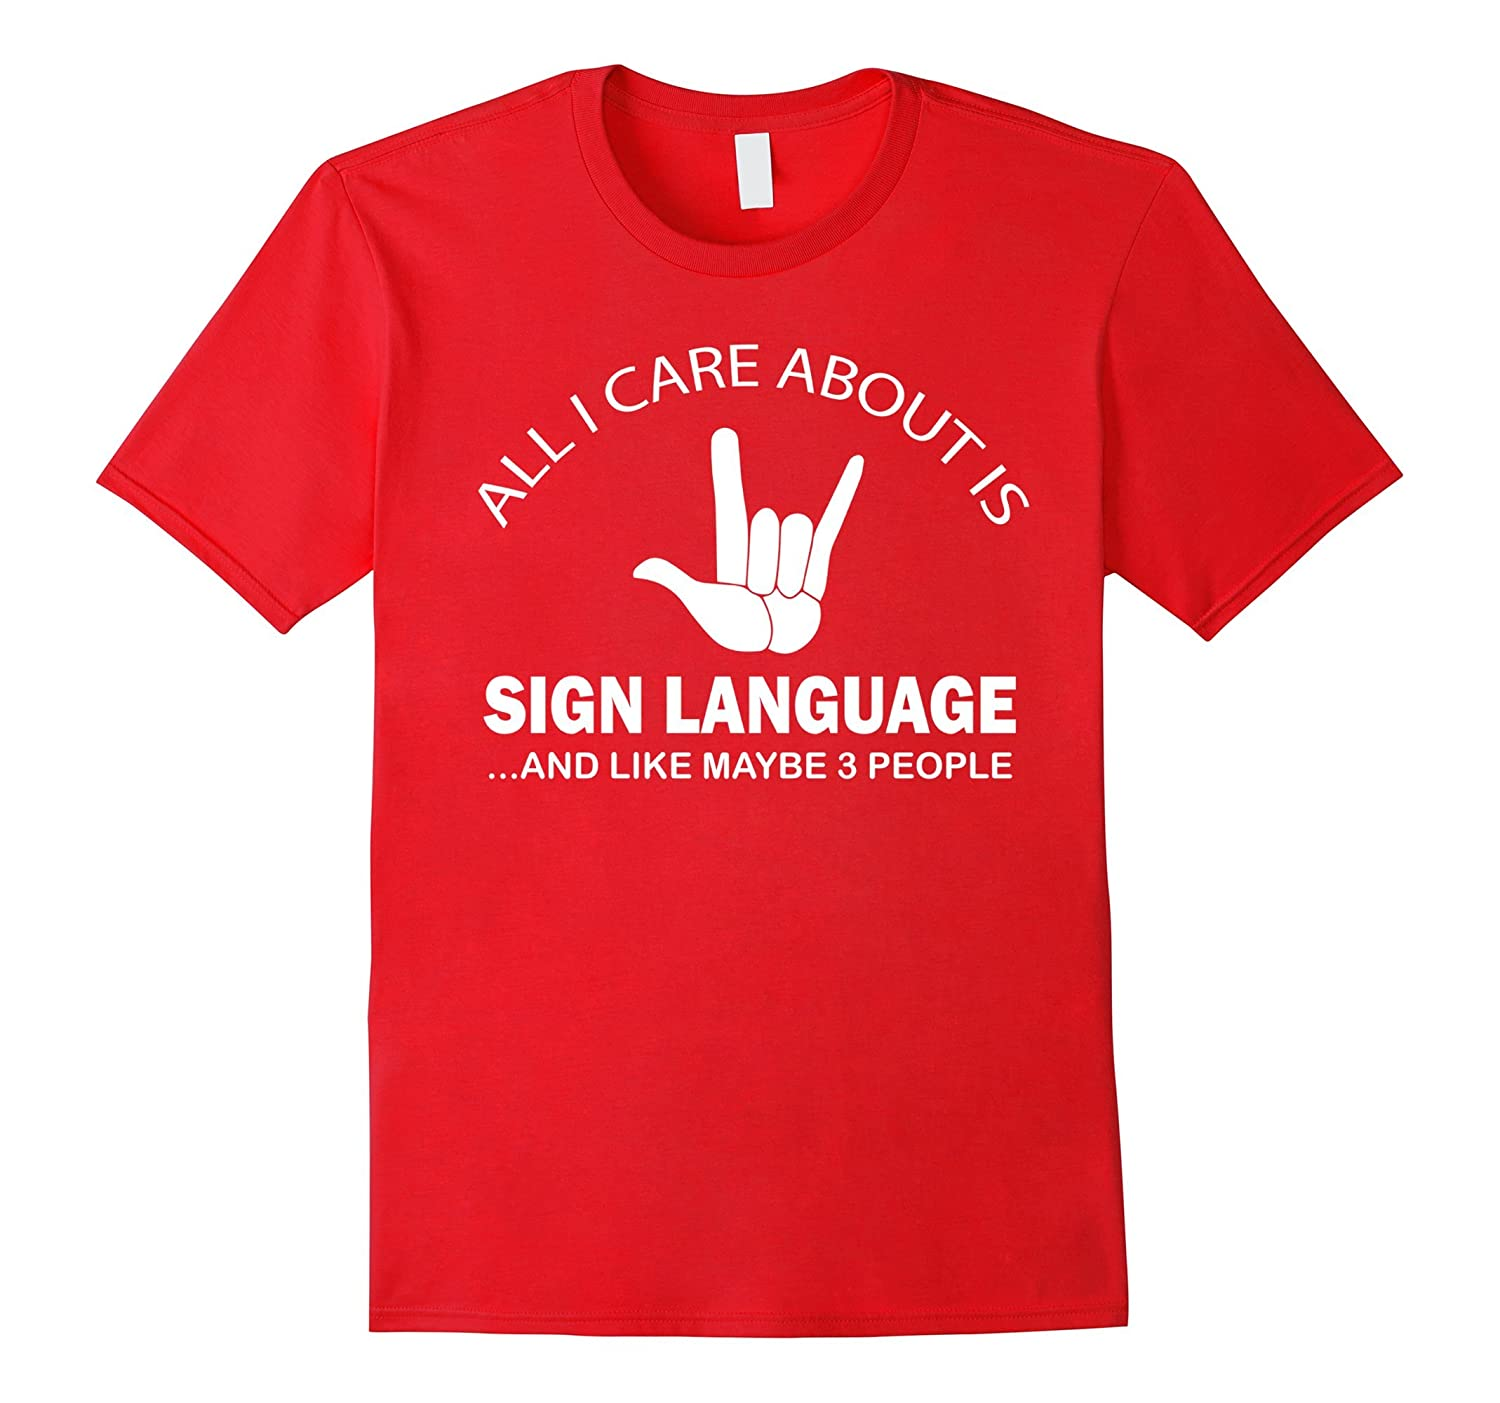 All I Care About Is Sign Language And Like Maybe 3 People-TD